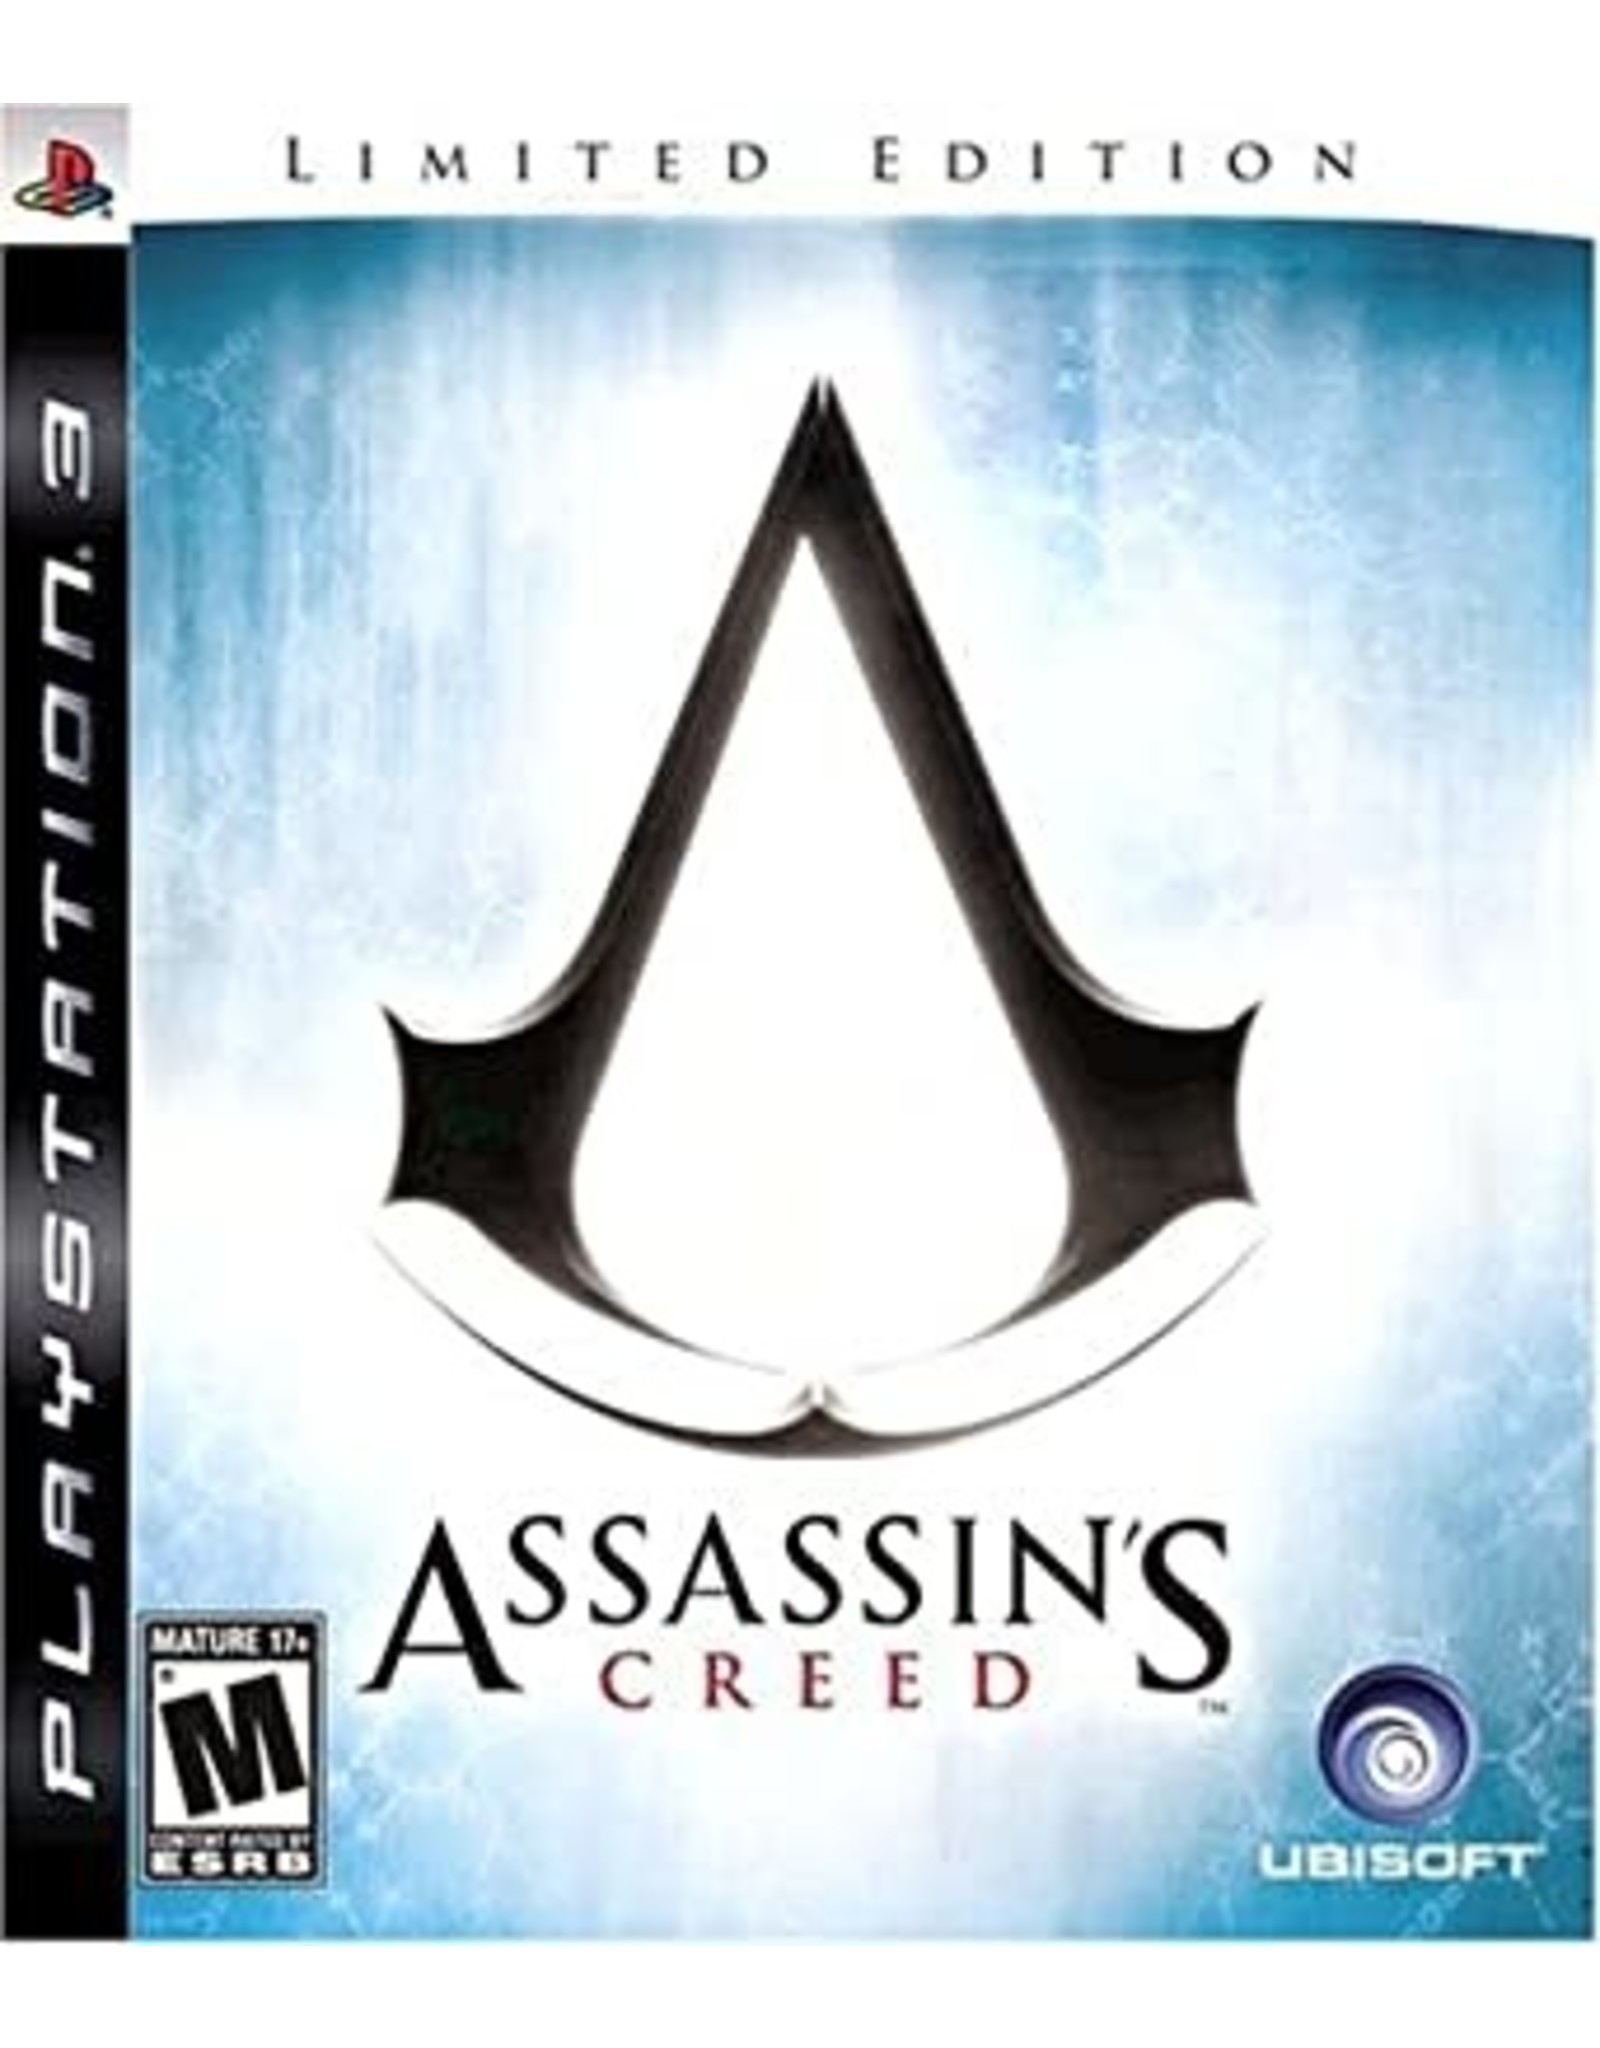 Playstation 3 Assassin's Creed Limited Edition (Used, No Figure)